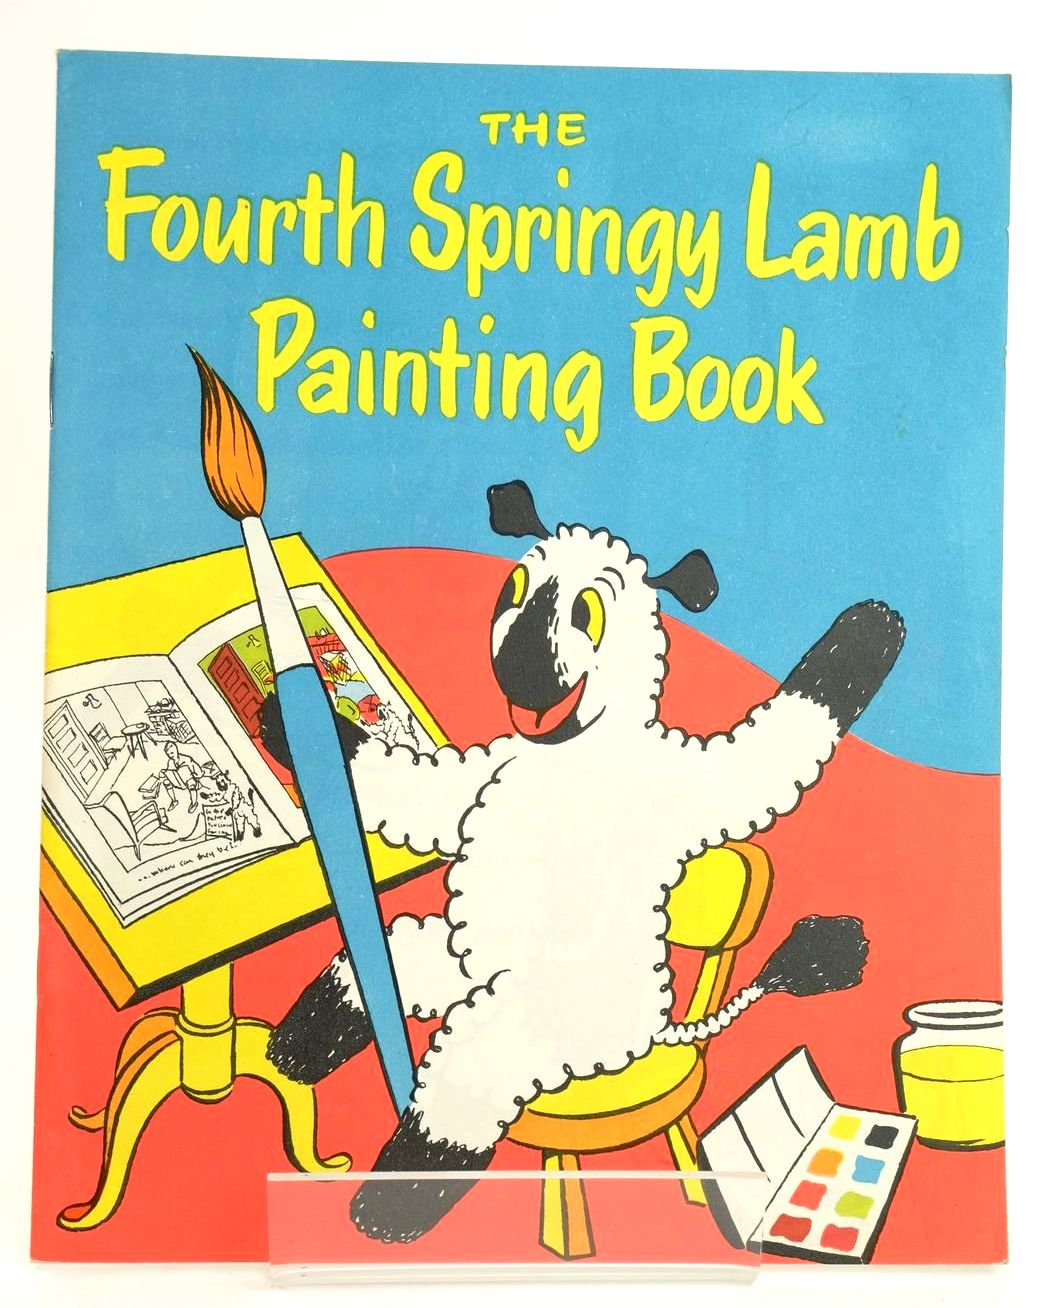 Photo of THE FOURTH SPRINGY LAMB PAINTING BOOK published by Blackwood Morton & Sons Ltd (STOCK CODE: 1318571)  for sale by Stella & Rose's Books